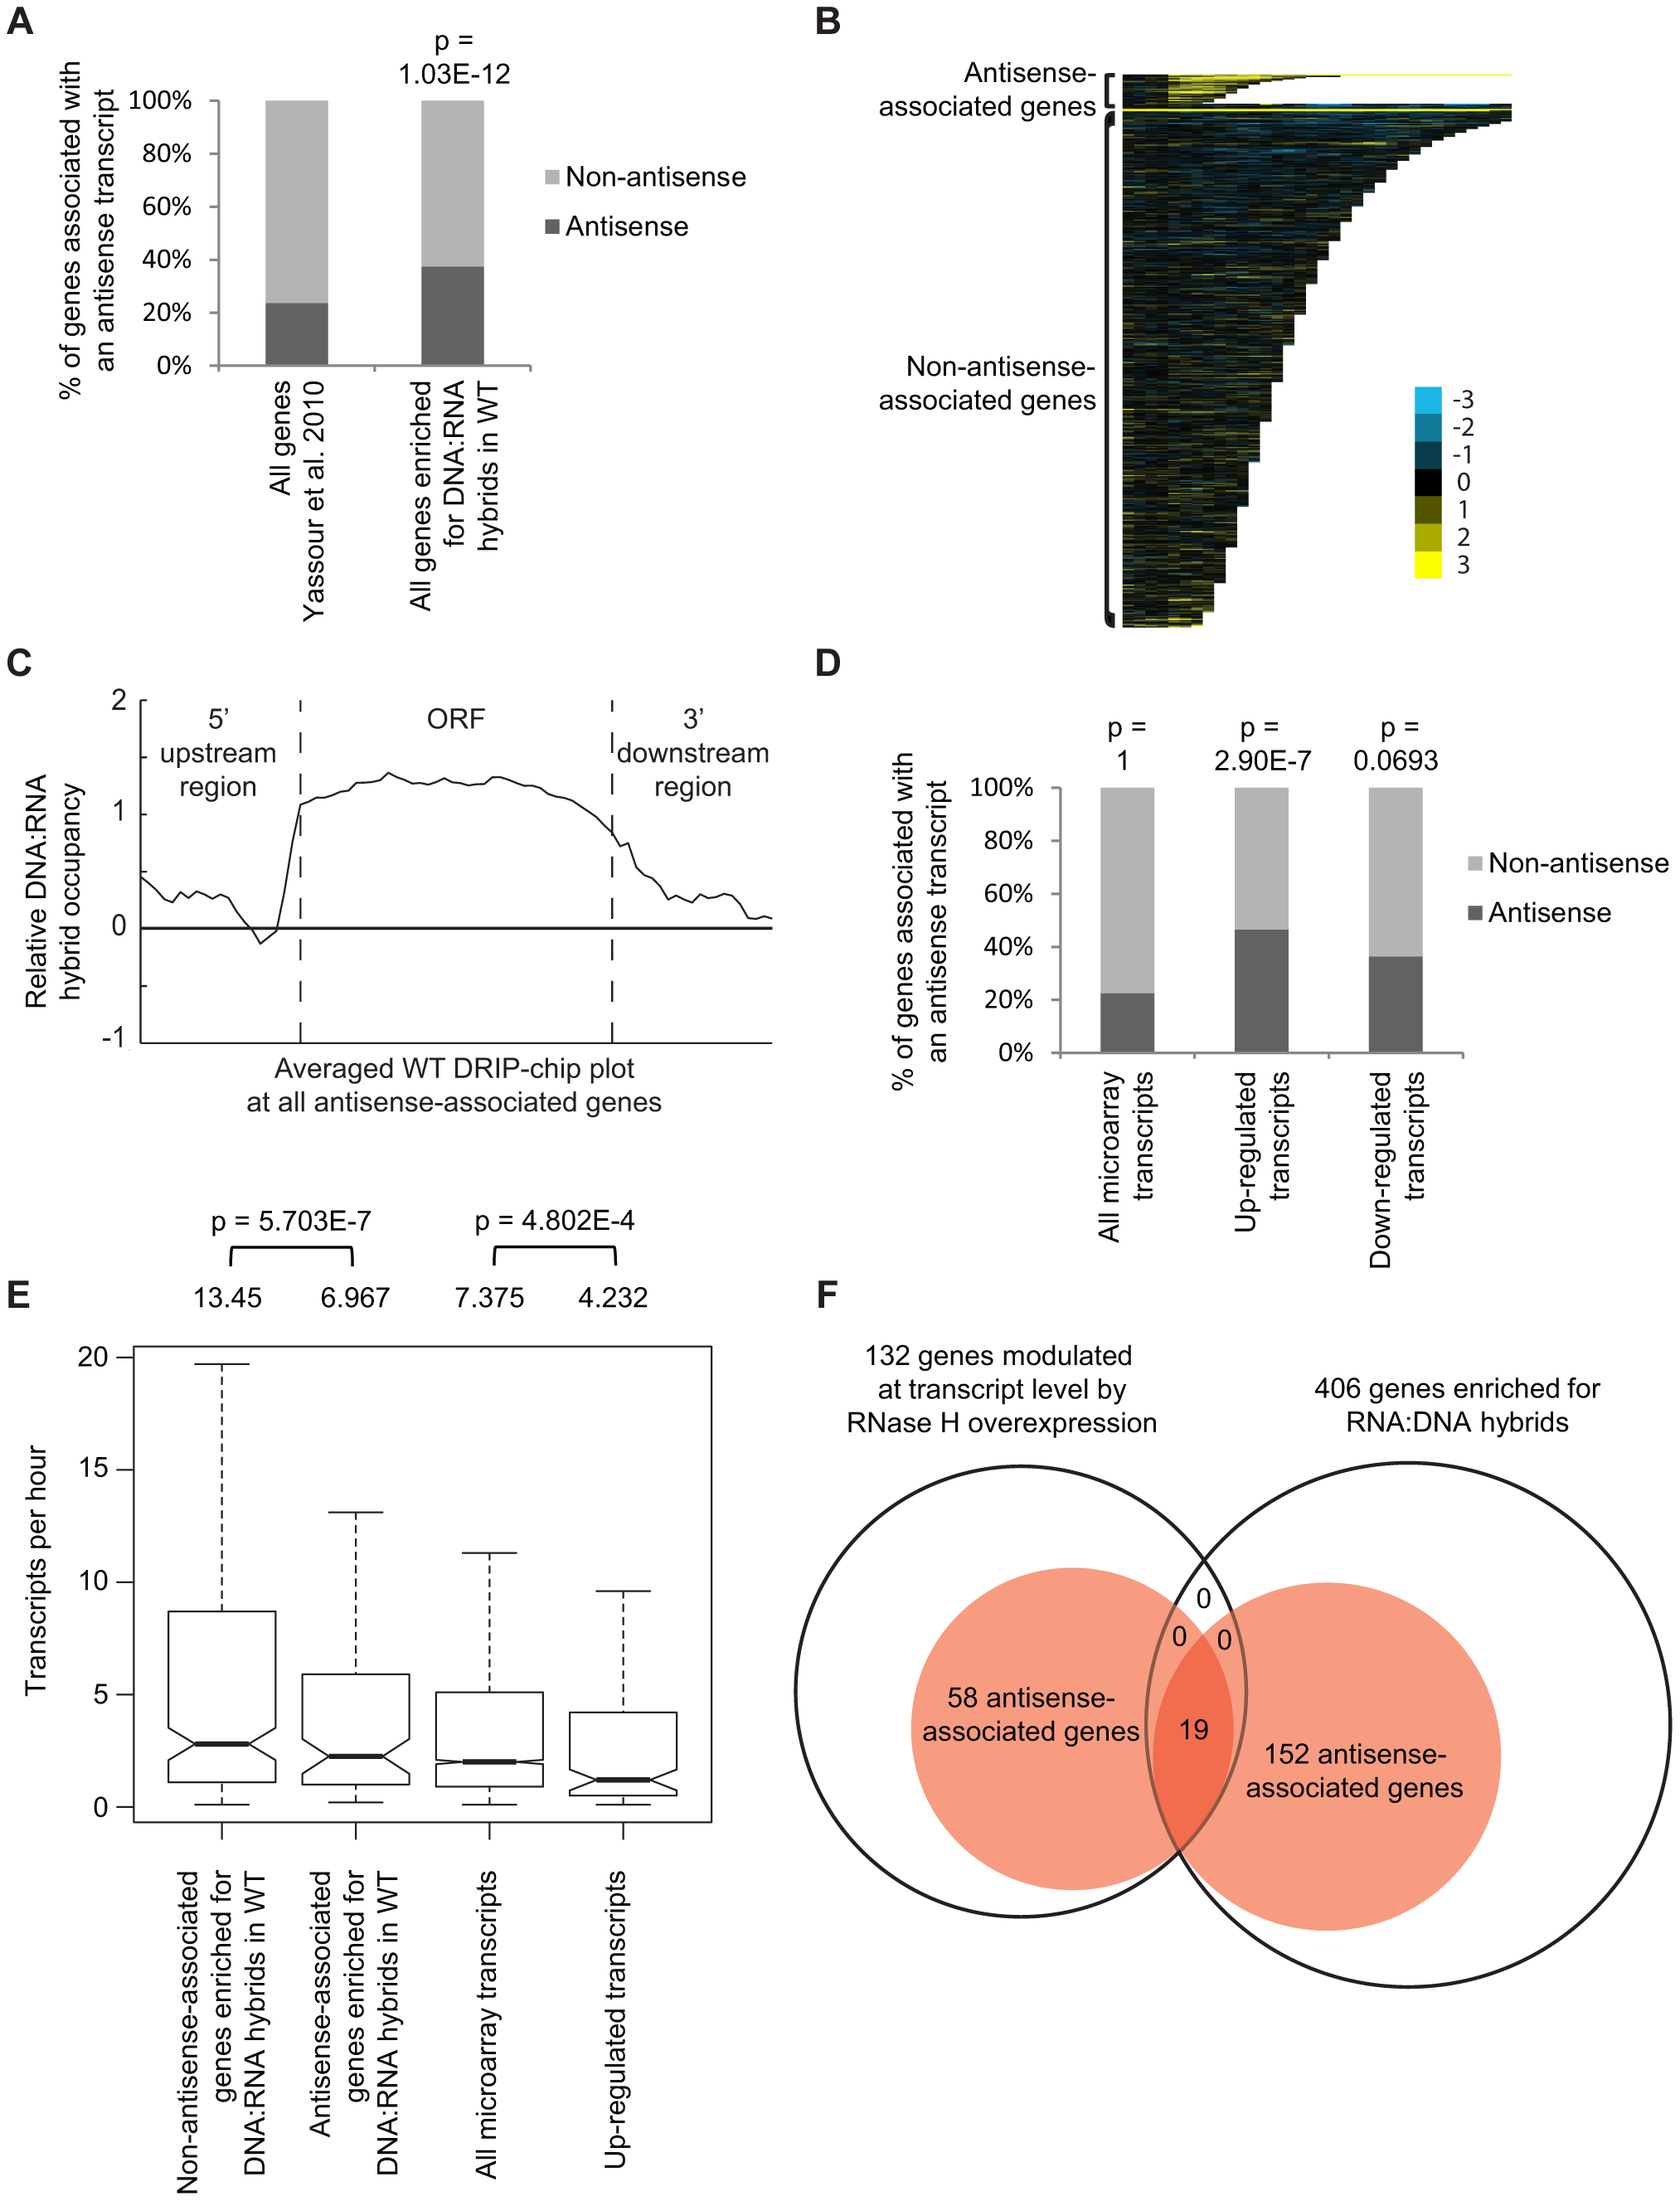 Genes associated with DNA:RNA hybrids were significantly associated with antisense transcripts.